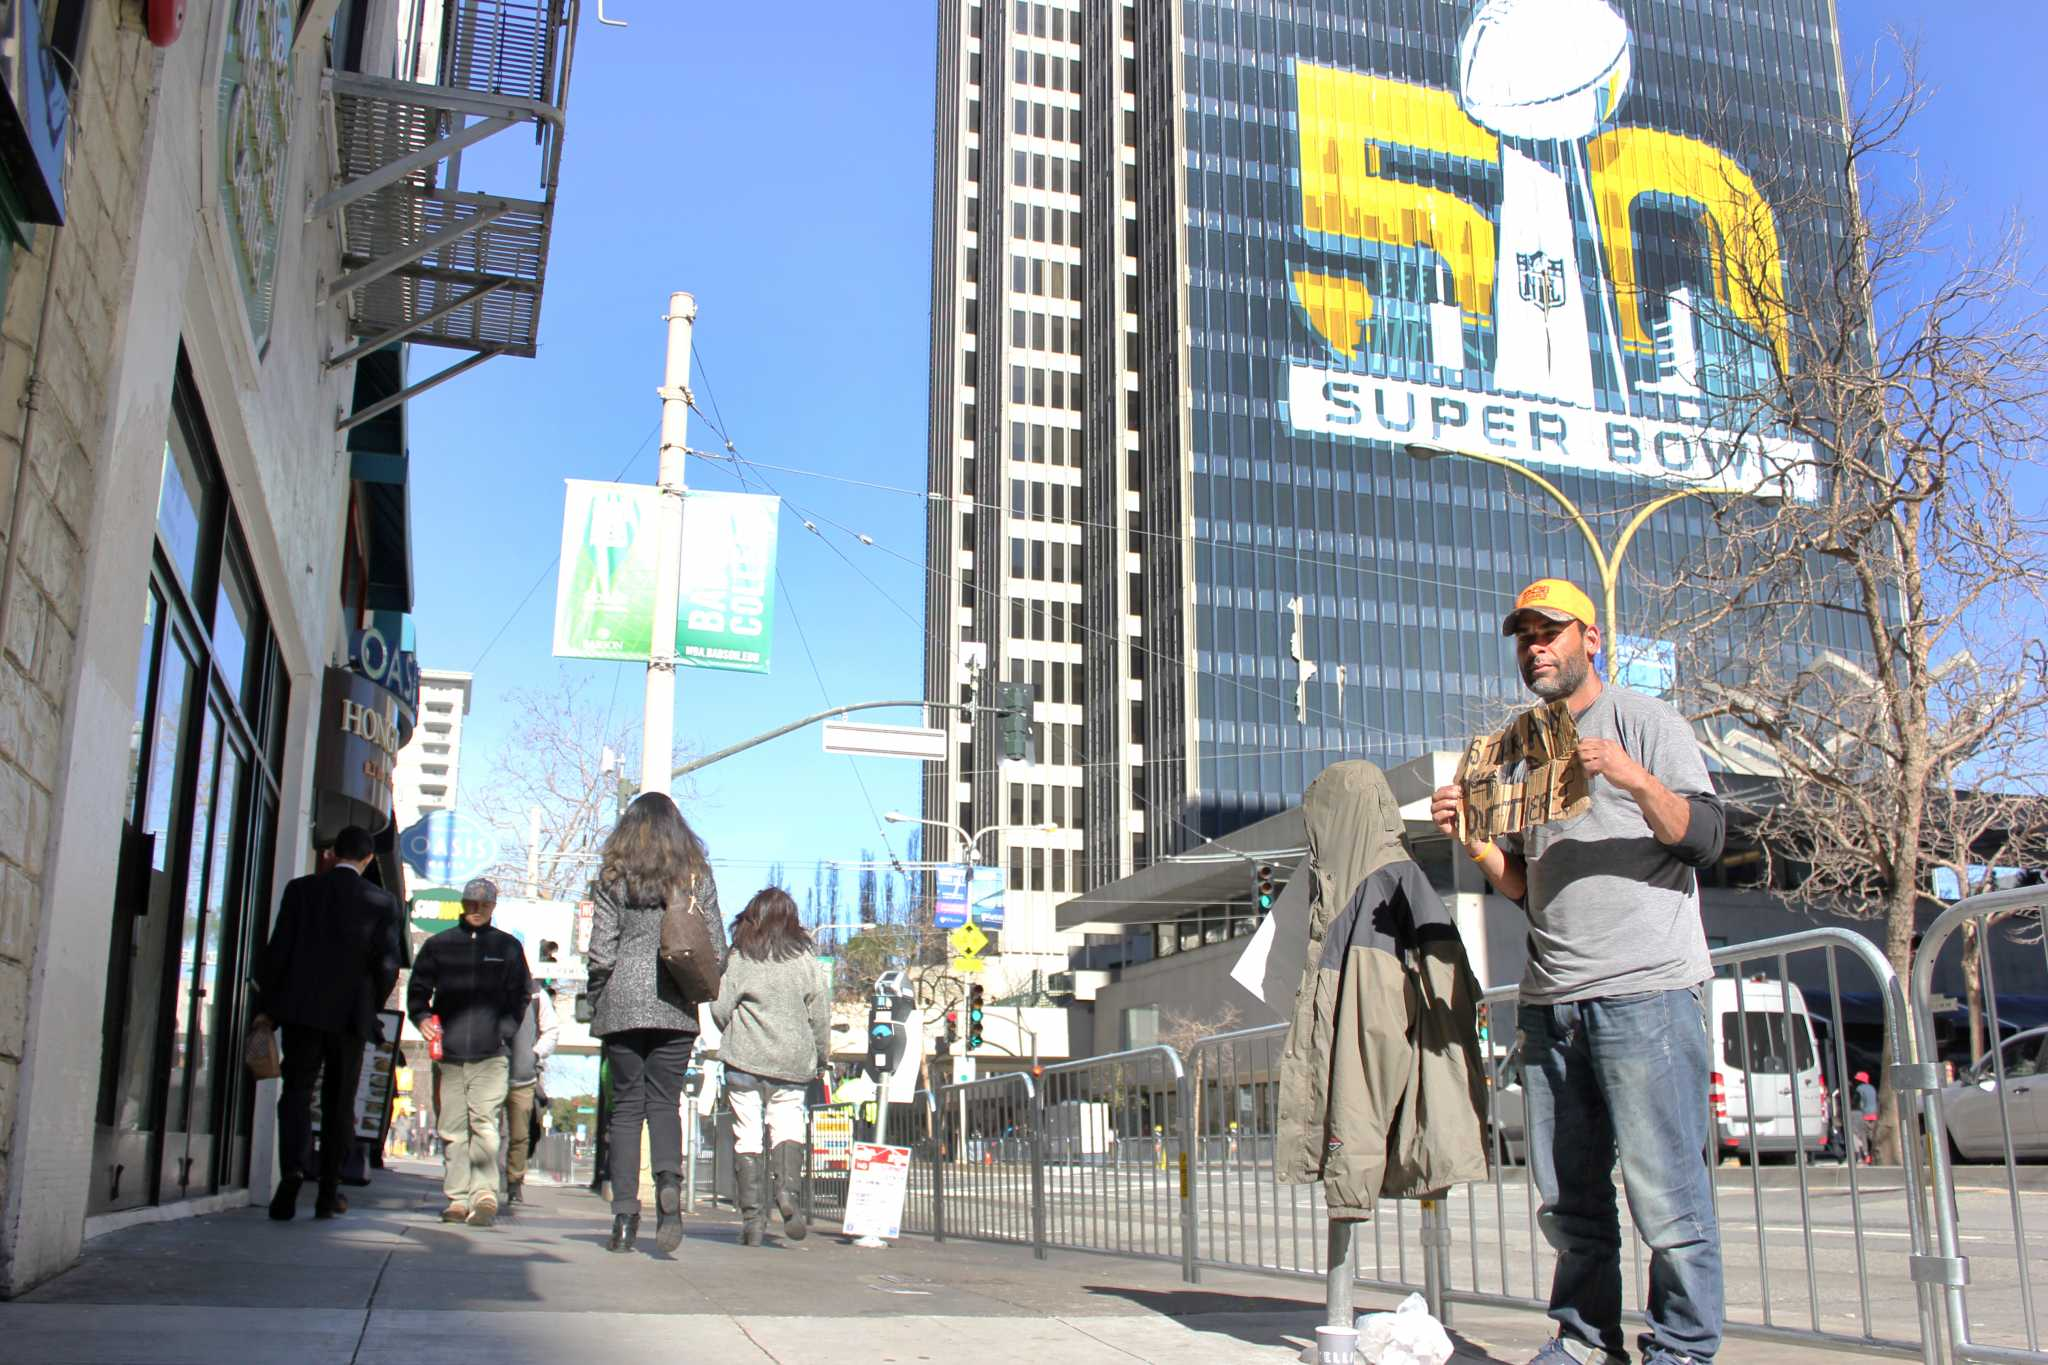 Noble Mitchell (right) holds a sign as people walk by on Drumm Street near the Super Bowl City festivities in San Francisco, Calif., Monday, Feb. 1, 2016. (George Morin / Xpress)